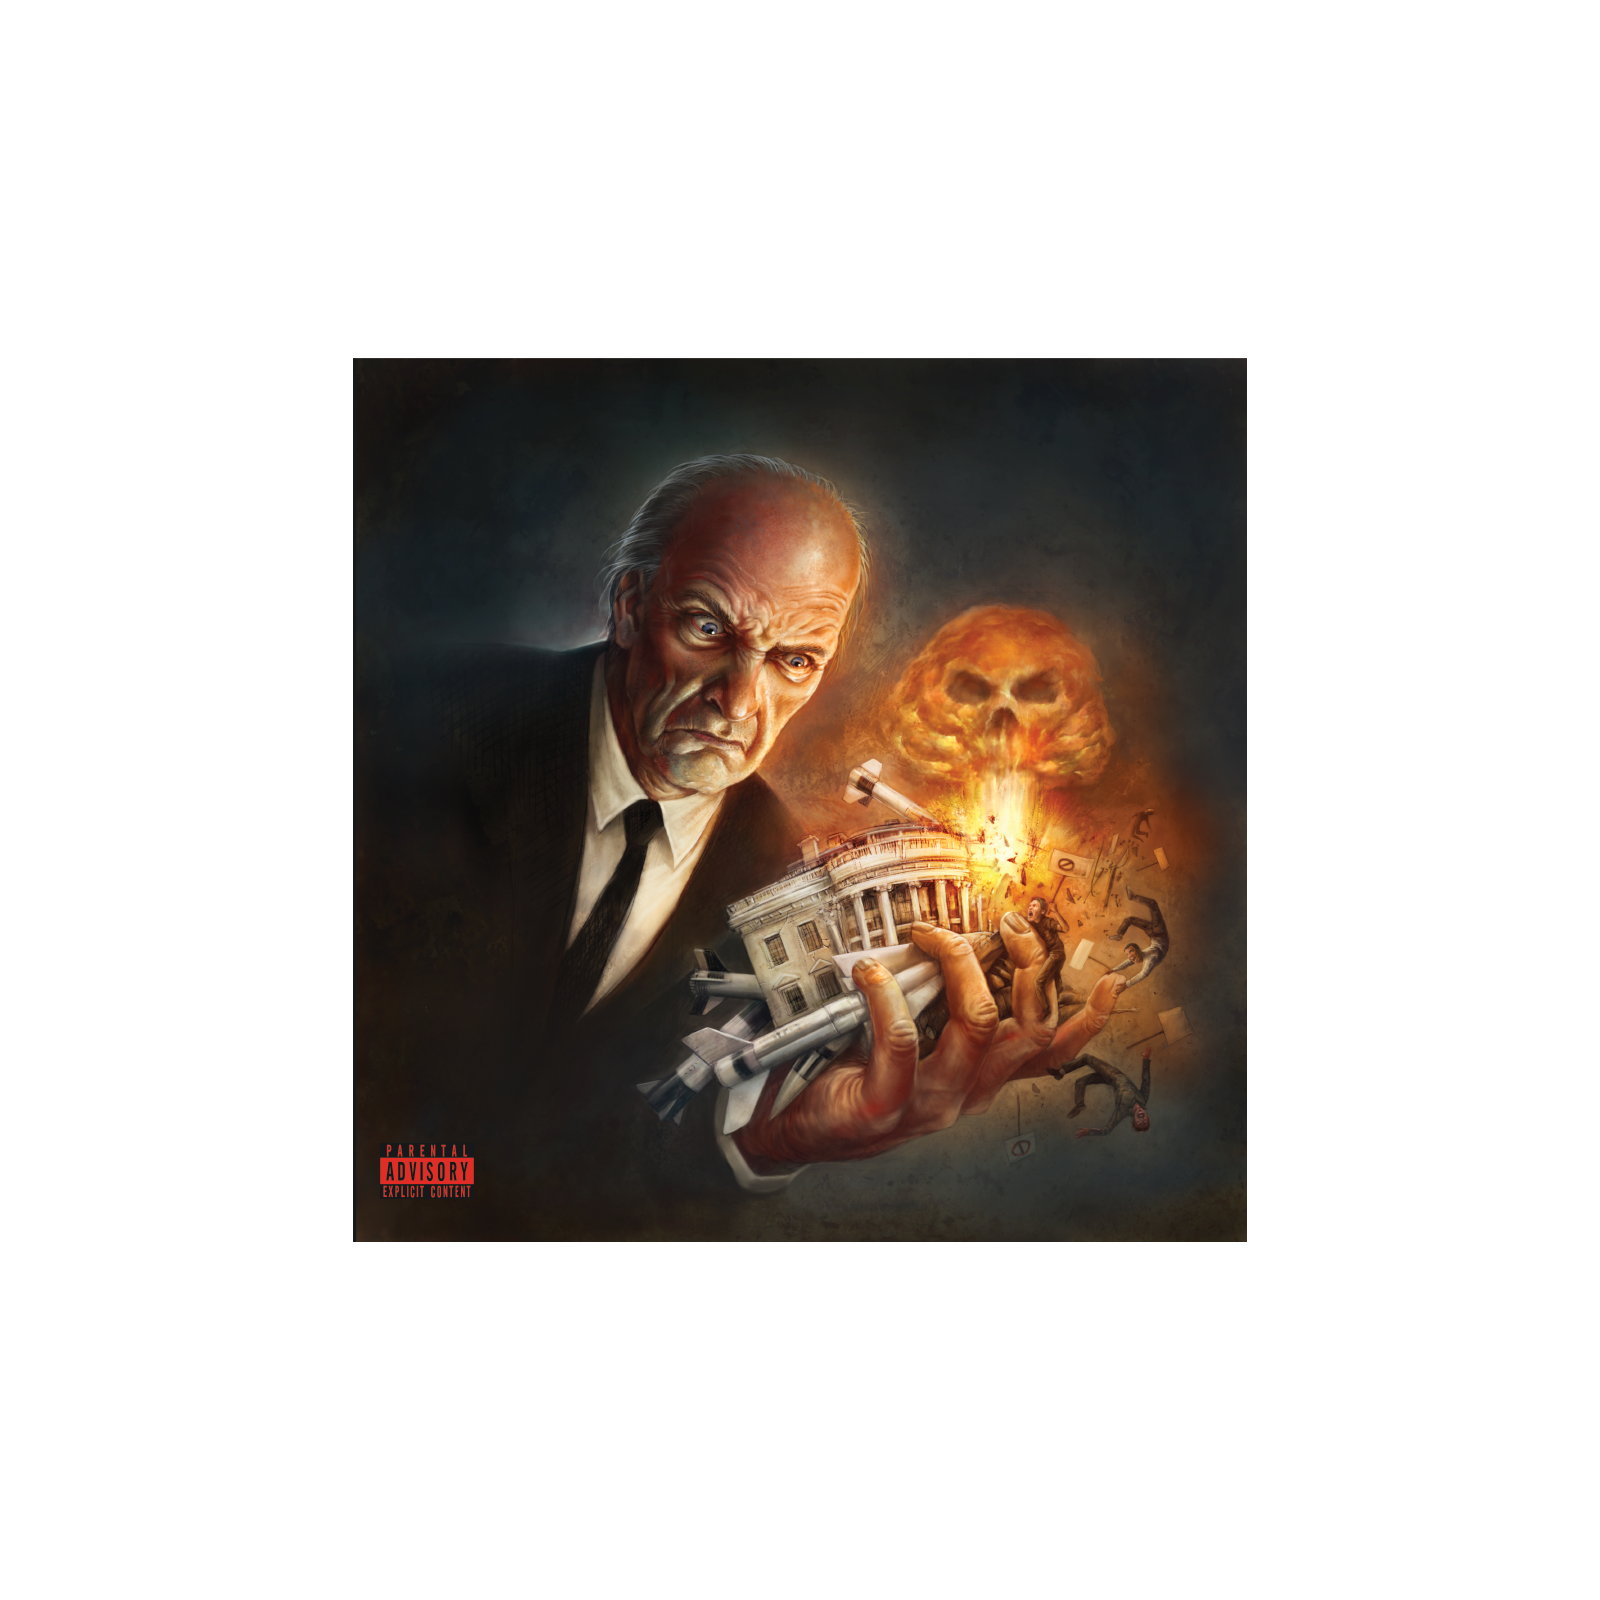 Vinnie Paz - The Pain Collector  - Digital Download